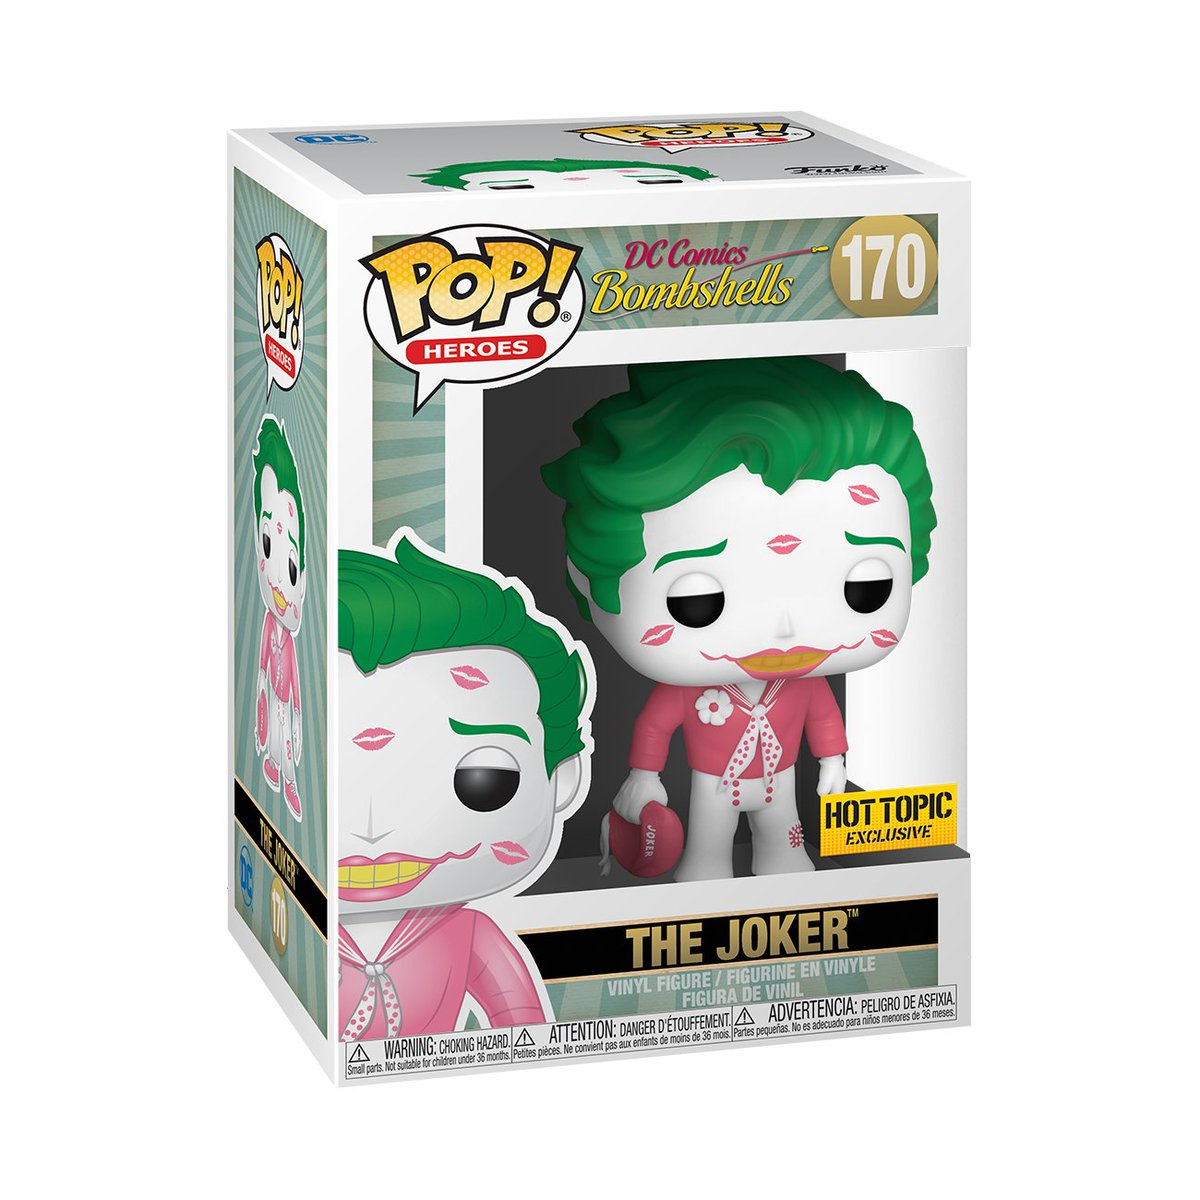 RT & follow @OriginalFunko for a chance to WIN @hottopic exclusive The Joker Pop! #Funko #Pop #FunkoPop #Giveaway #Joker #DC #Valentines